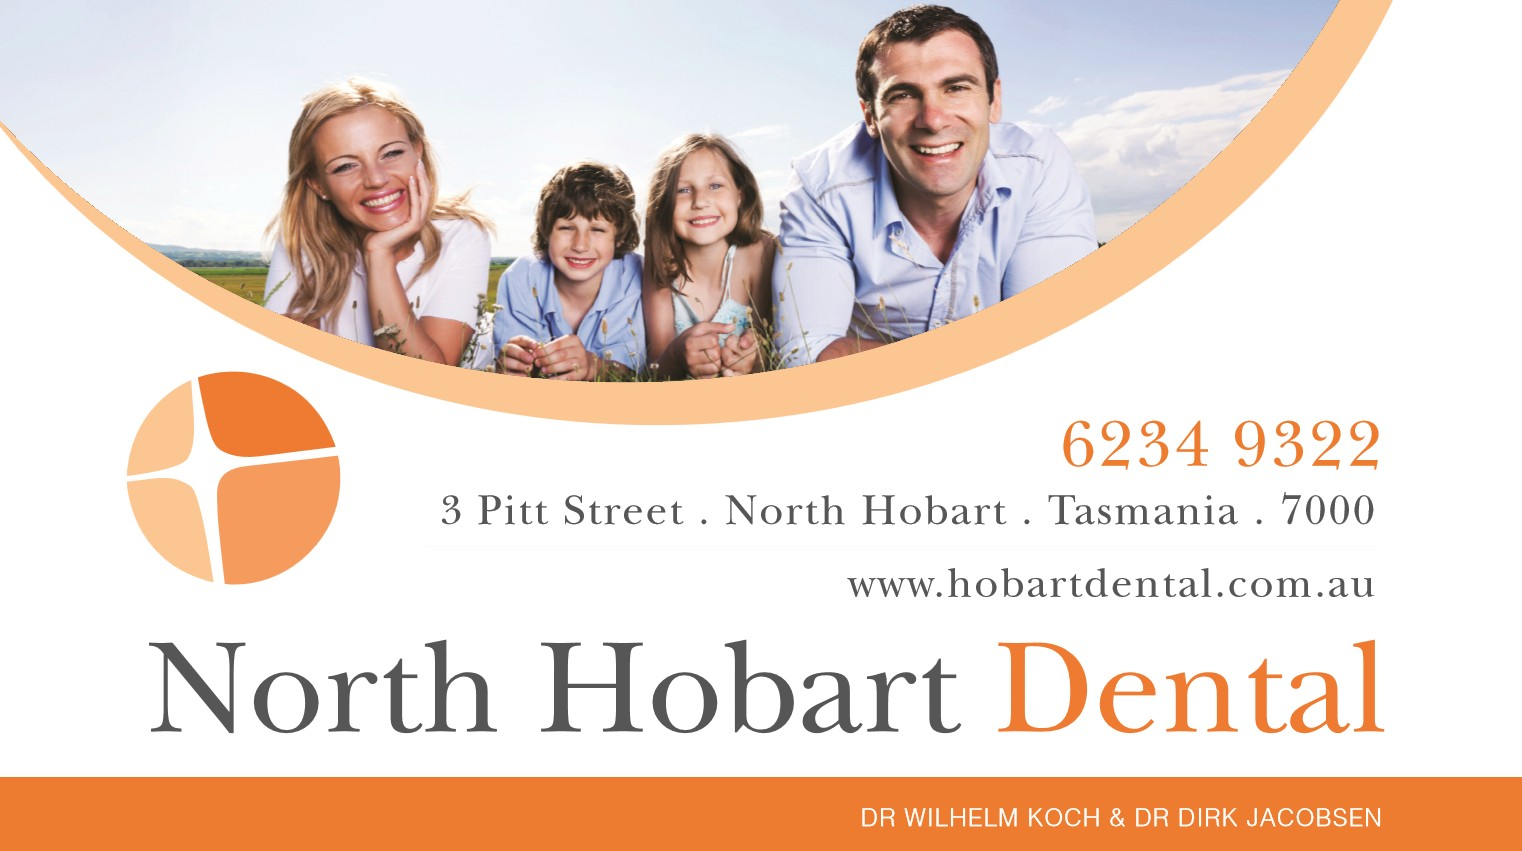 North Hobart Dental